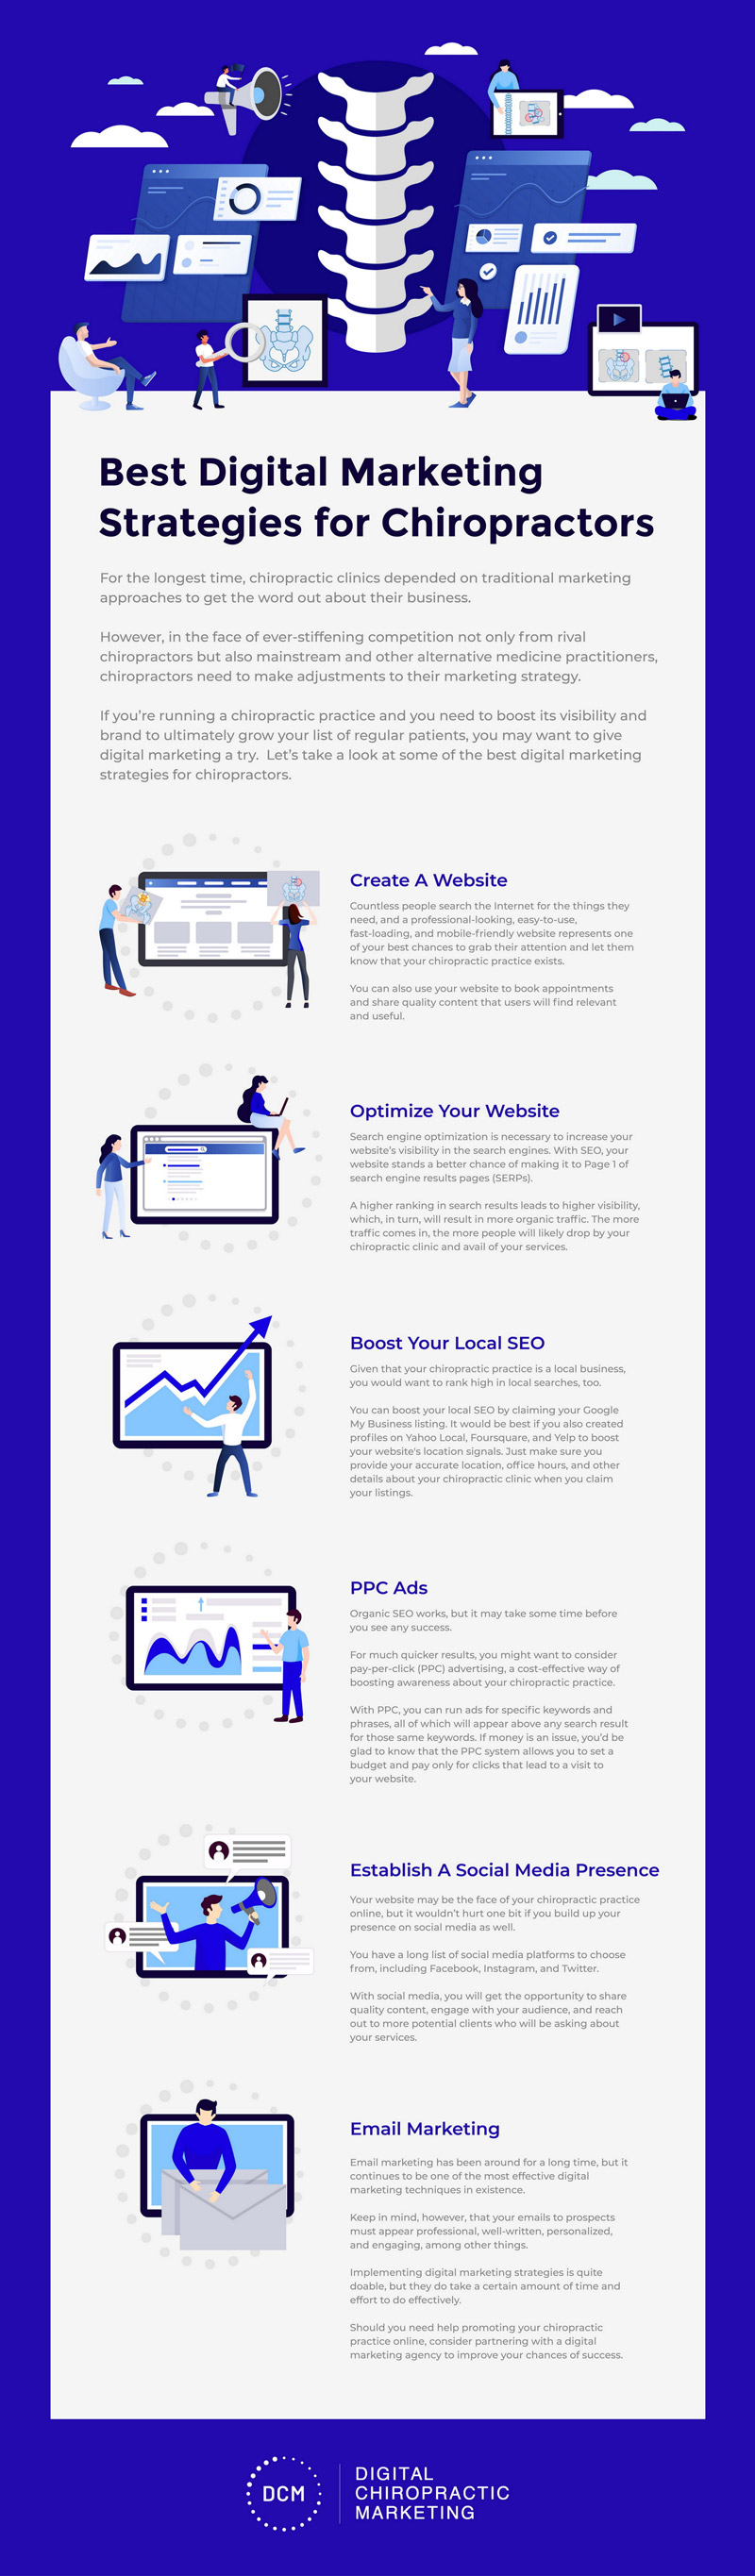 Digital Marketing for Chiropractors: Topnotch Tips to Keep in Mind (Infographic) 1